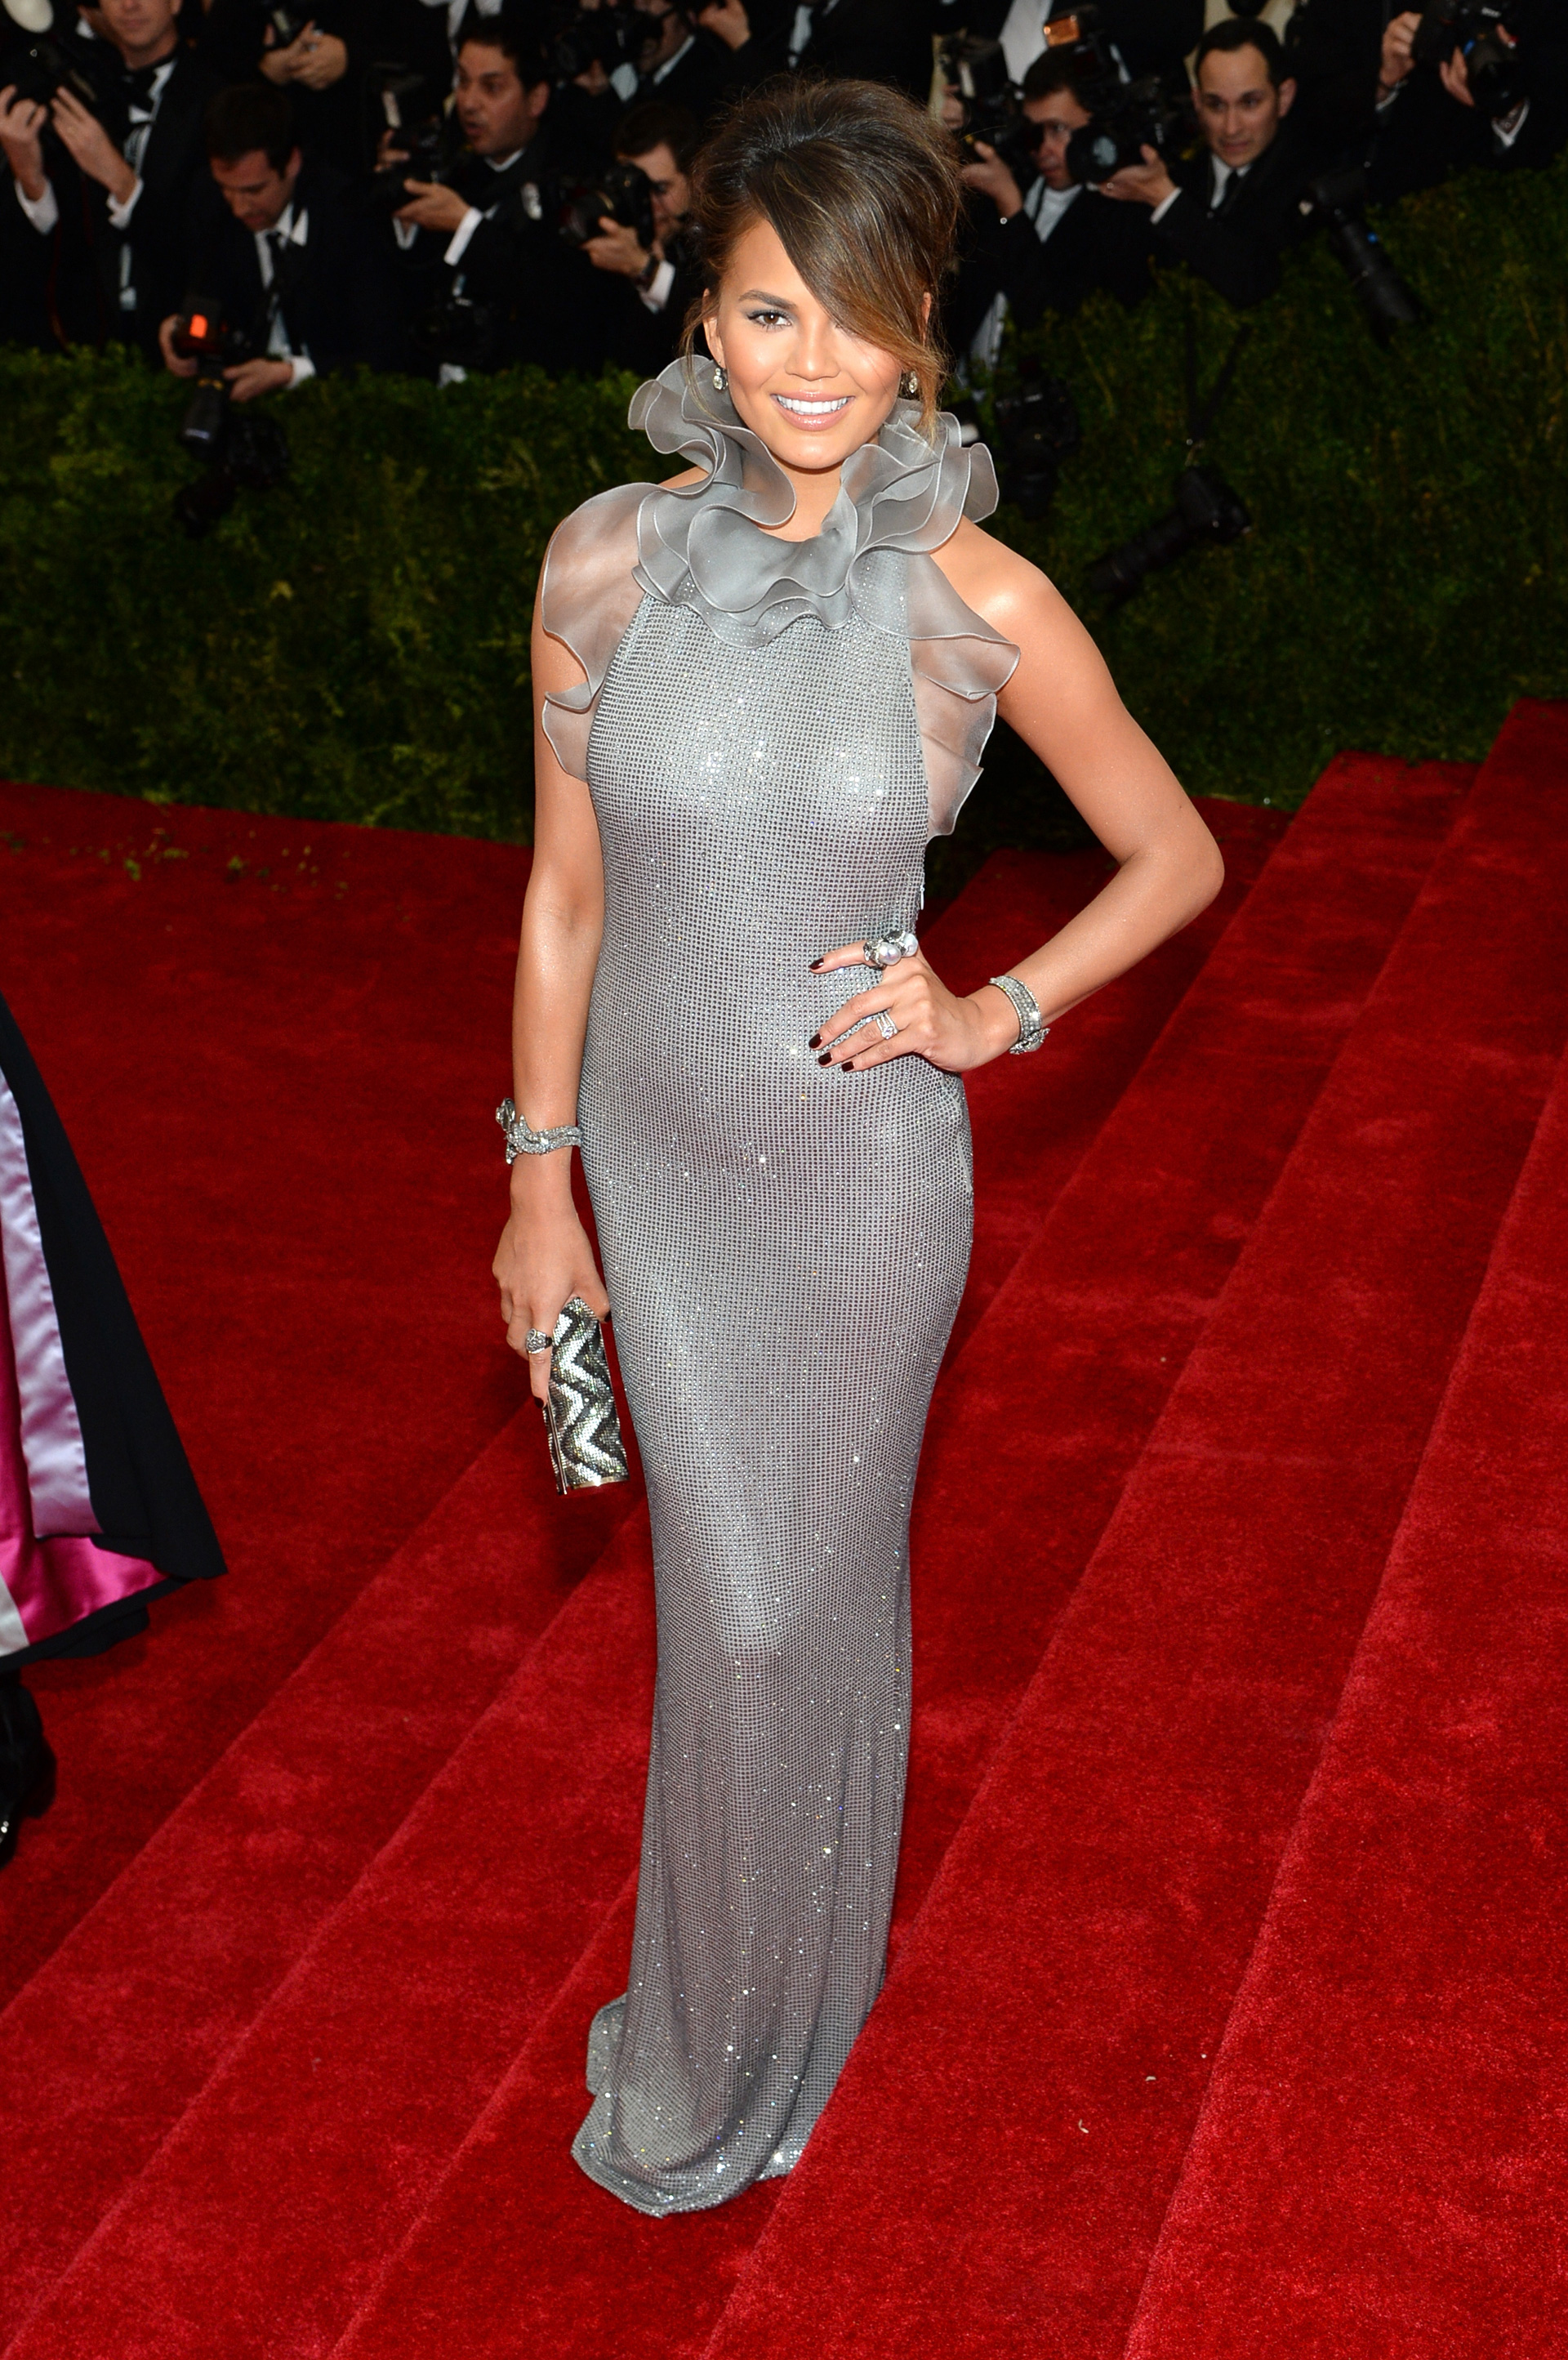 Chrissy Teigen at the 2014 Met Gala